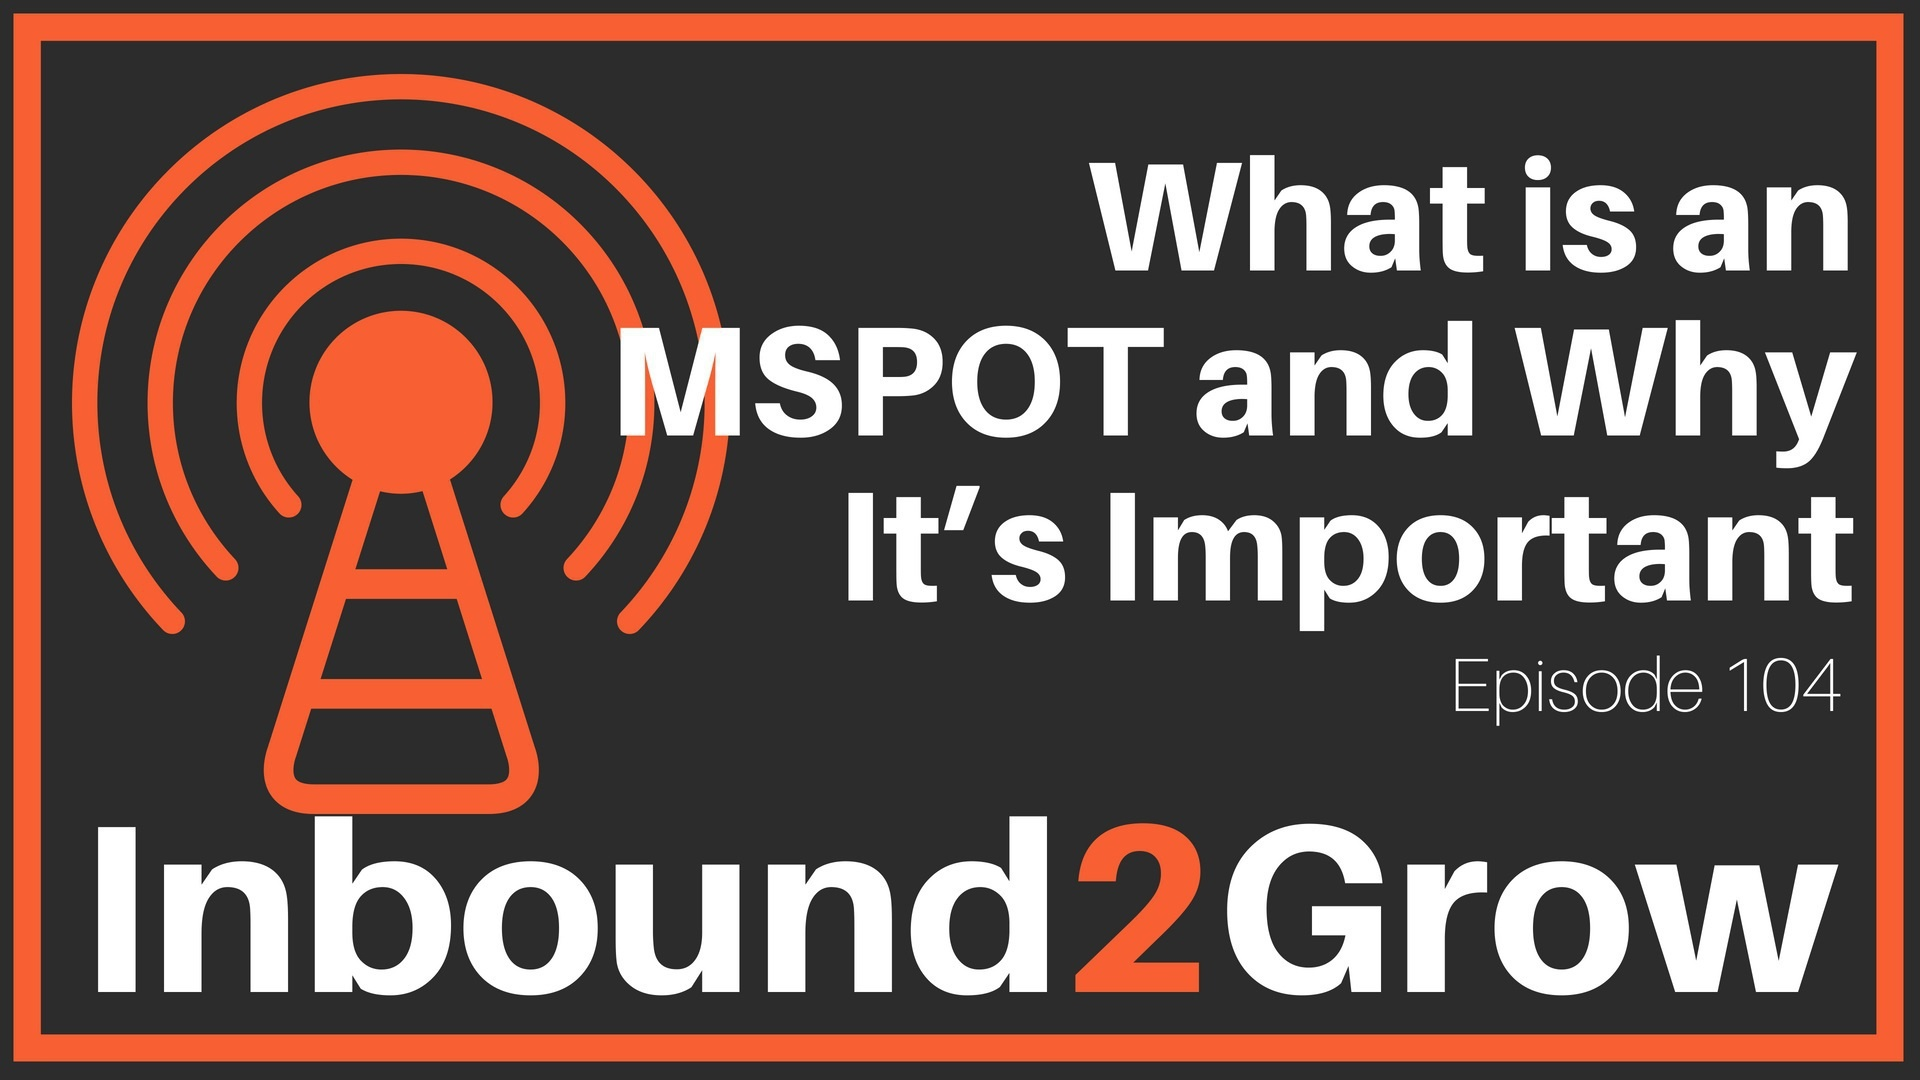 Inbound2Grow Episode 104: What is an MSPOT and Why It's Important